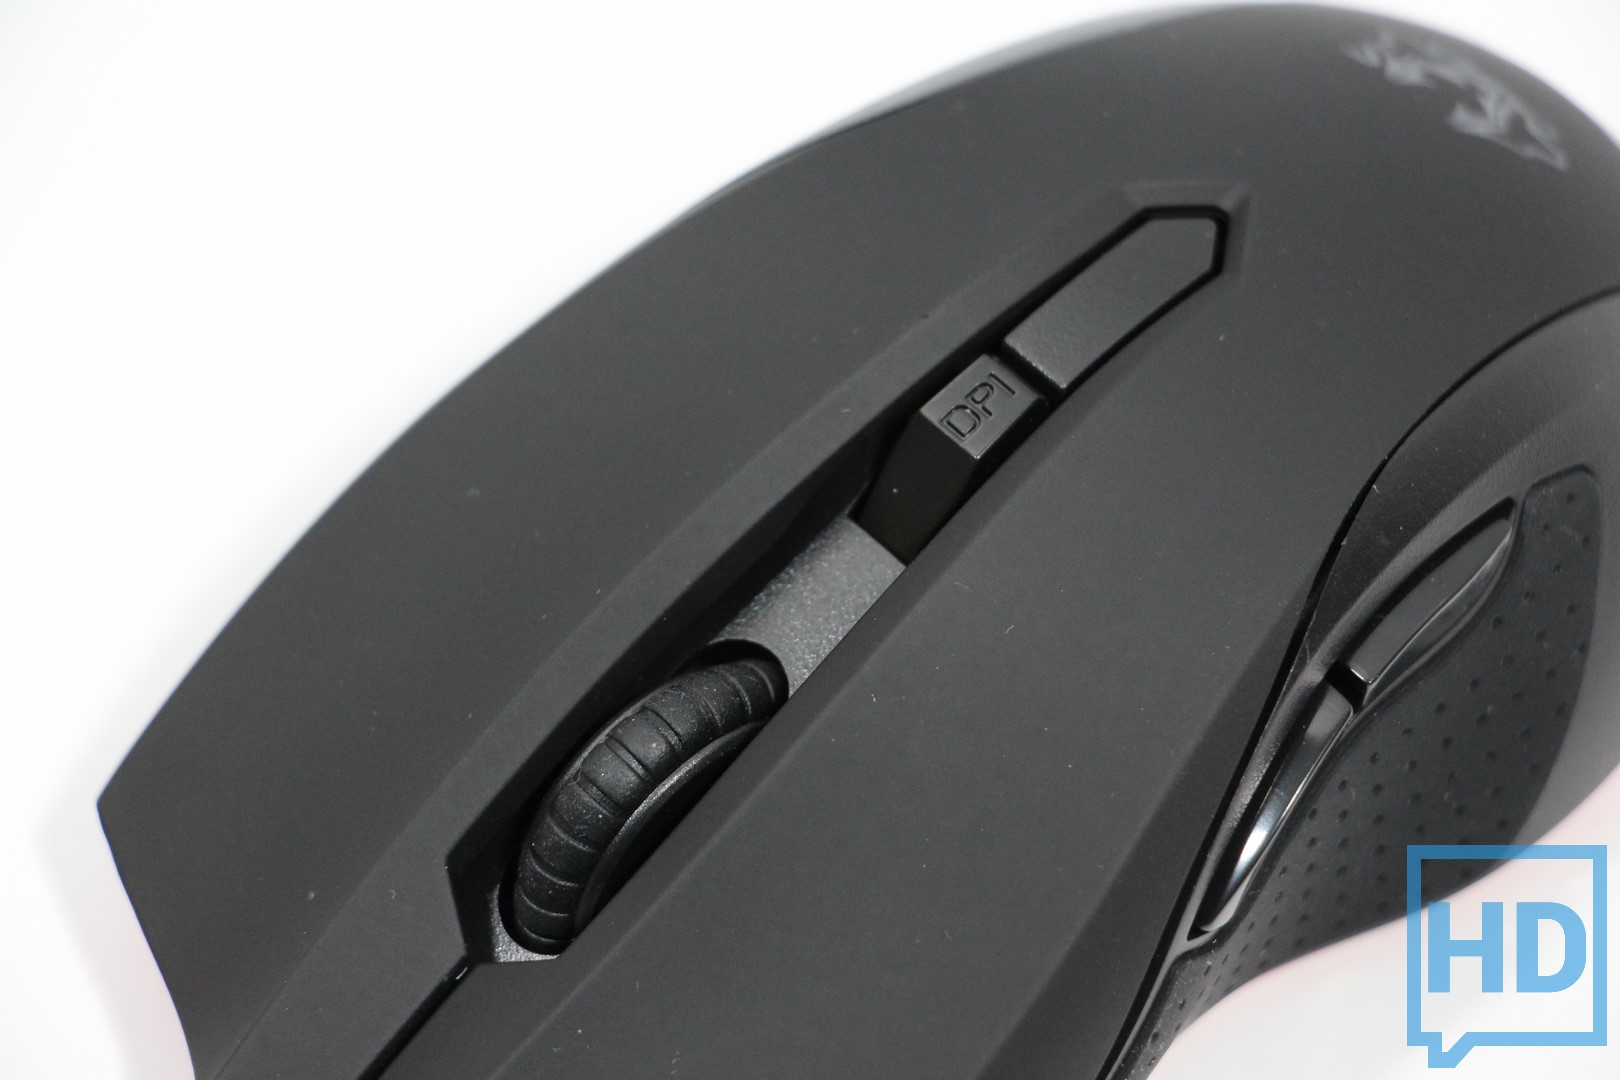 47ac80eb0f7 Review Mouse ASUS Cerberus